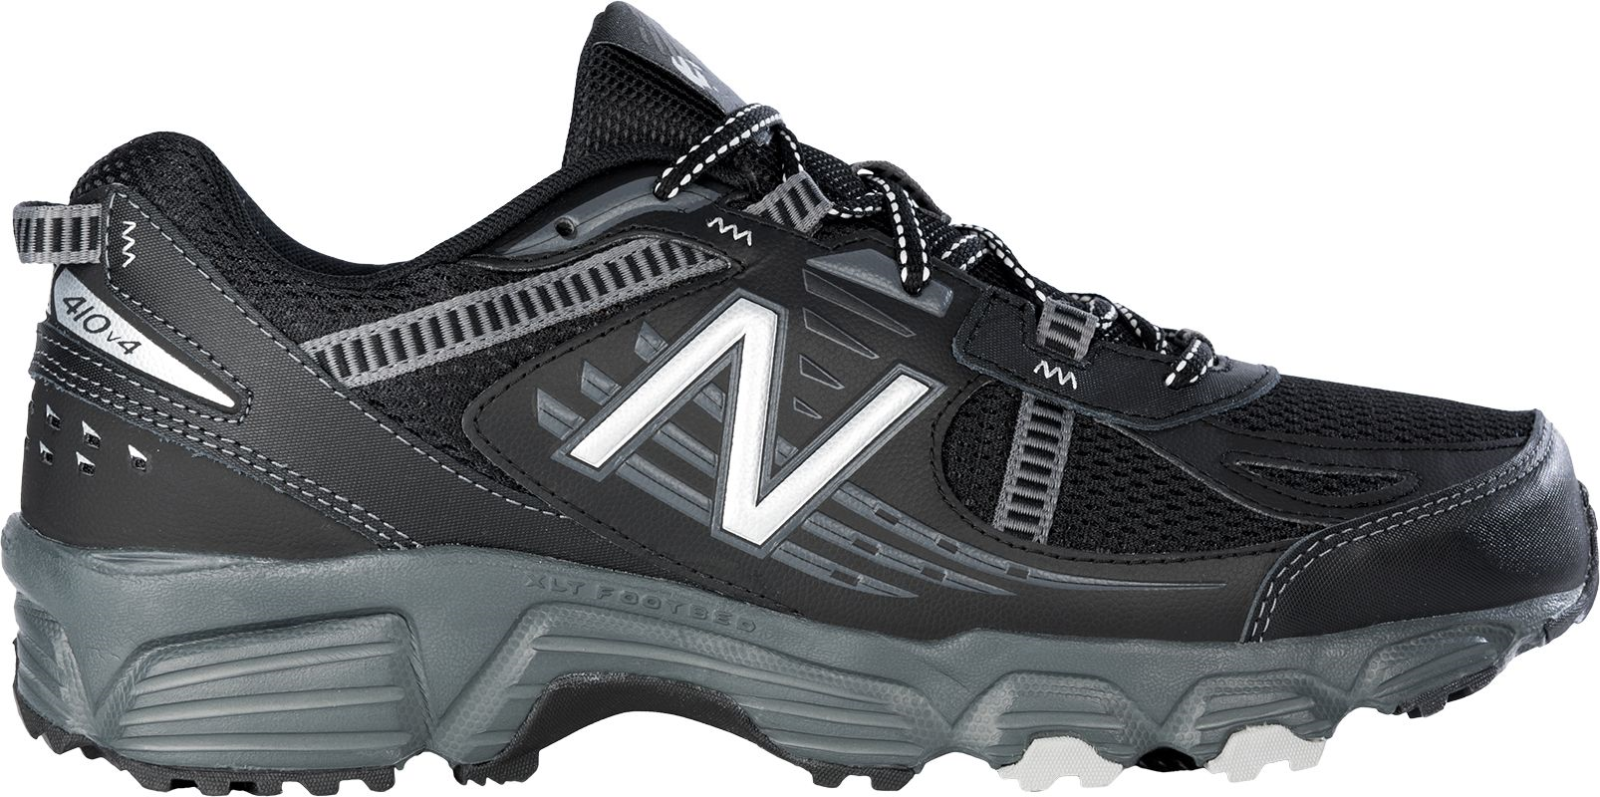 NEW BALANCE 410v4 410 v4 Trail Running MENS 4E WIDE Width Black MT410BS4 NEW